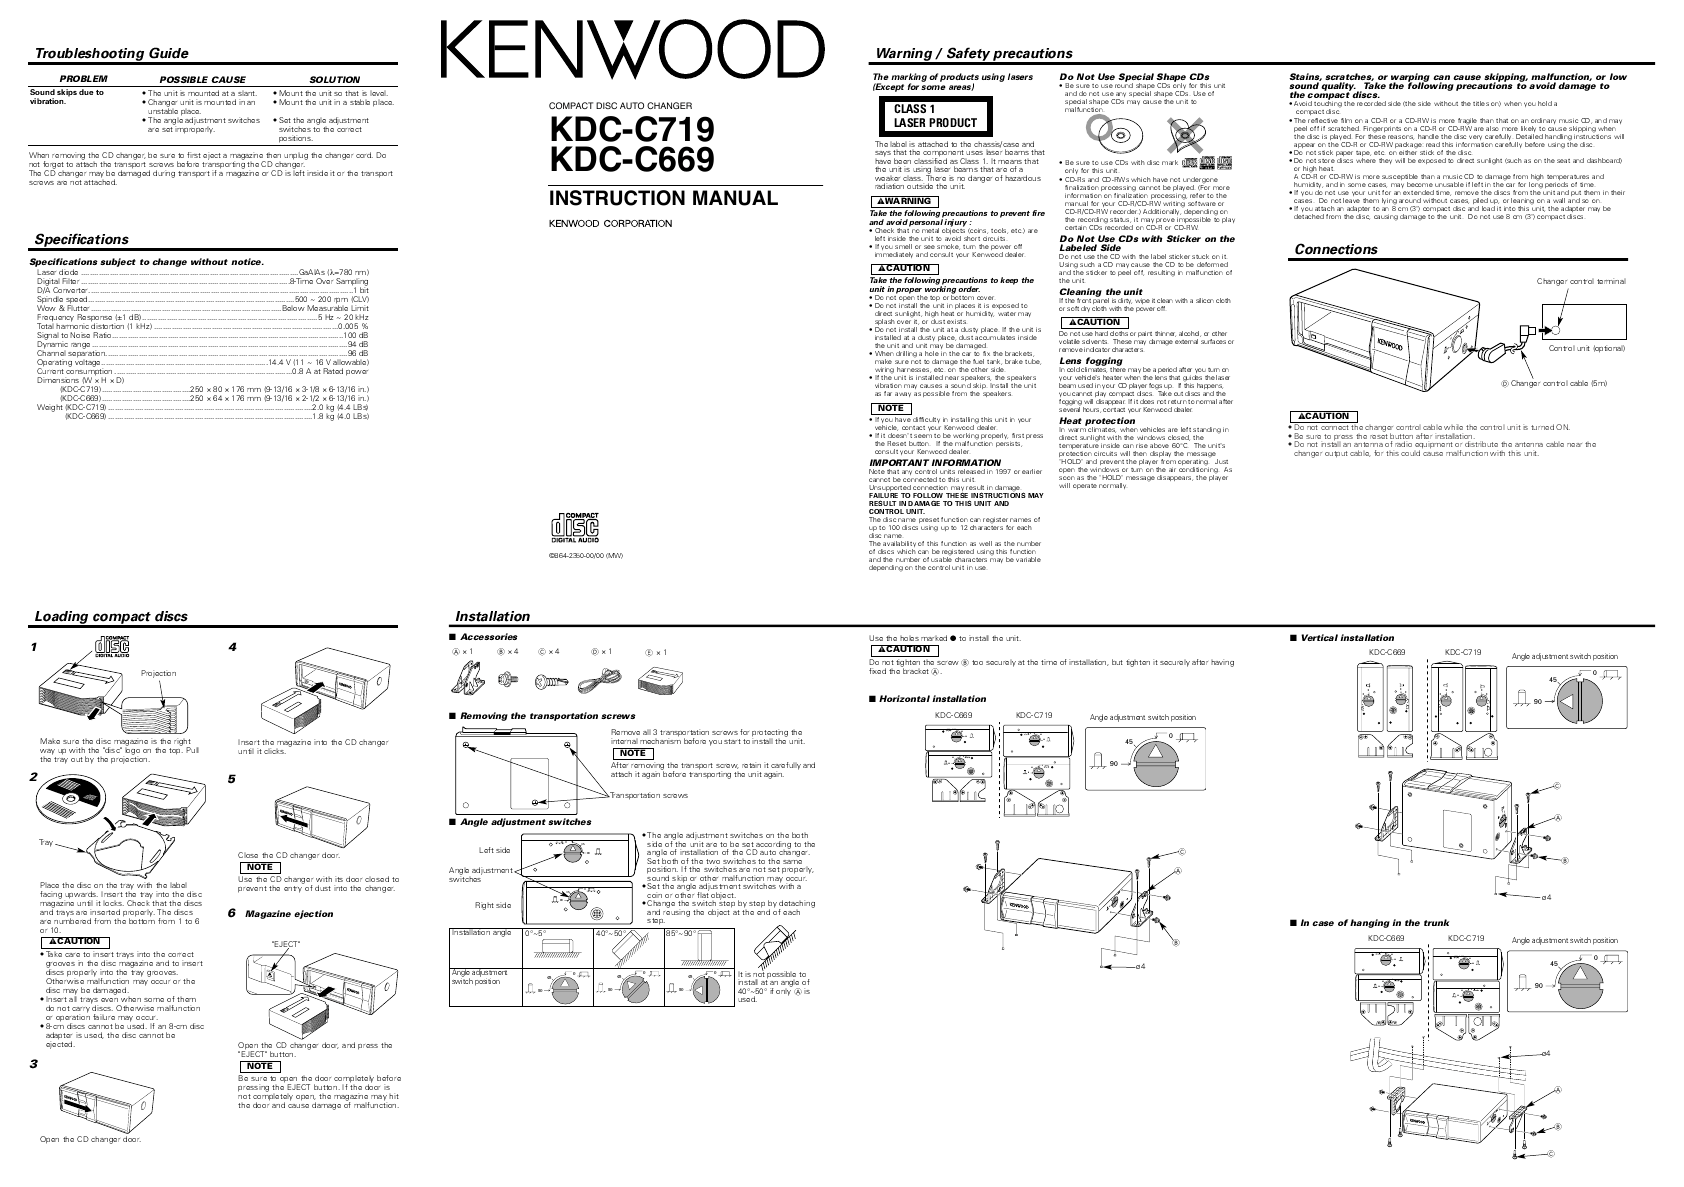 Kenwood Car Stereo System KDC-C719 User's Guide